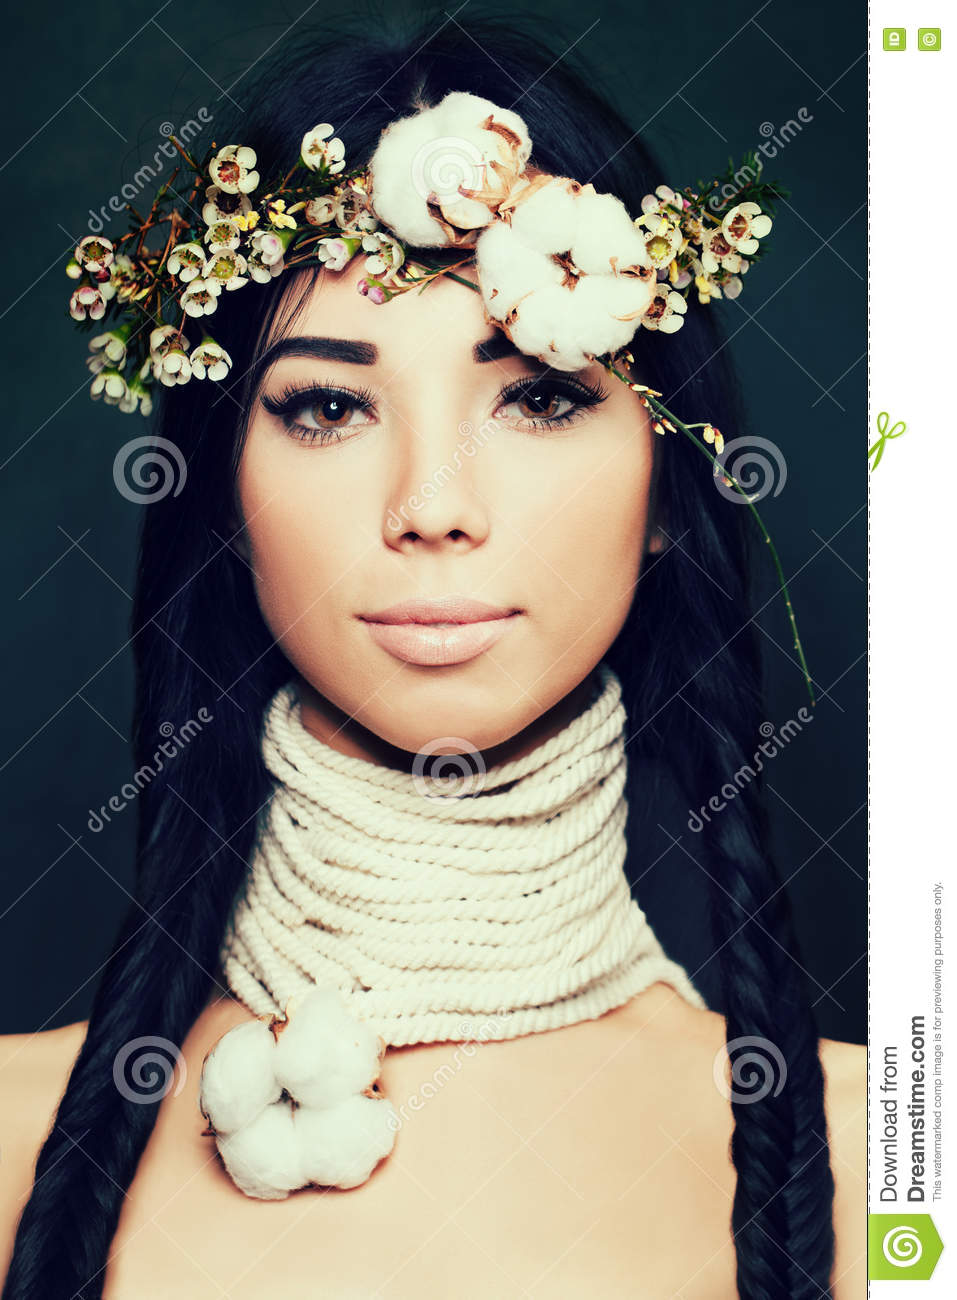 Pretty Woman with Long Black Hair and Flowers Crown. Ethnic Beau